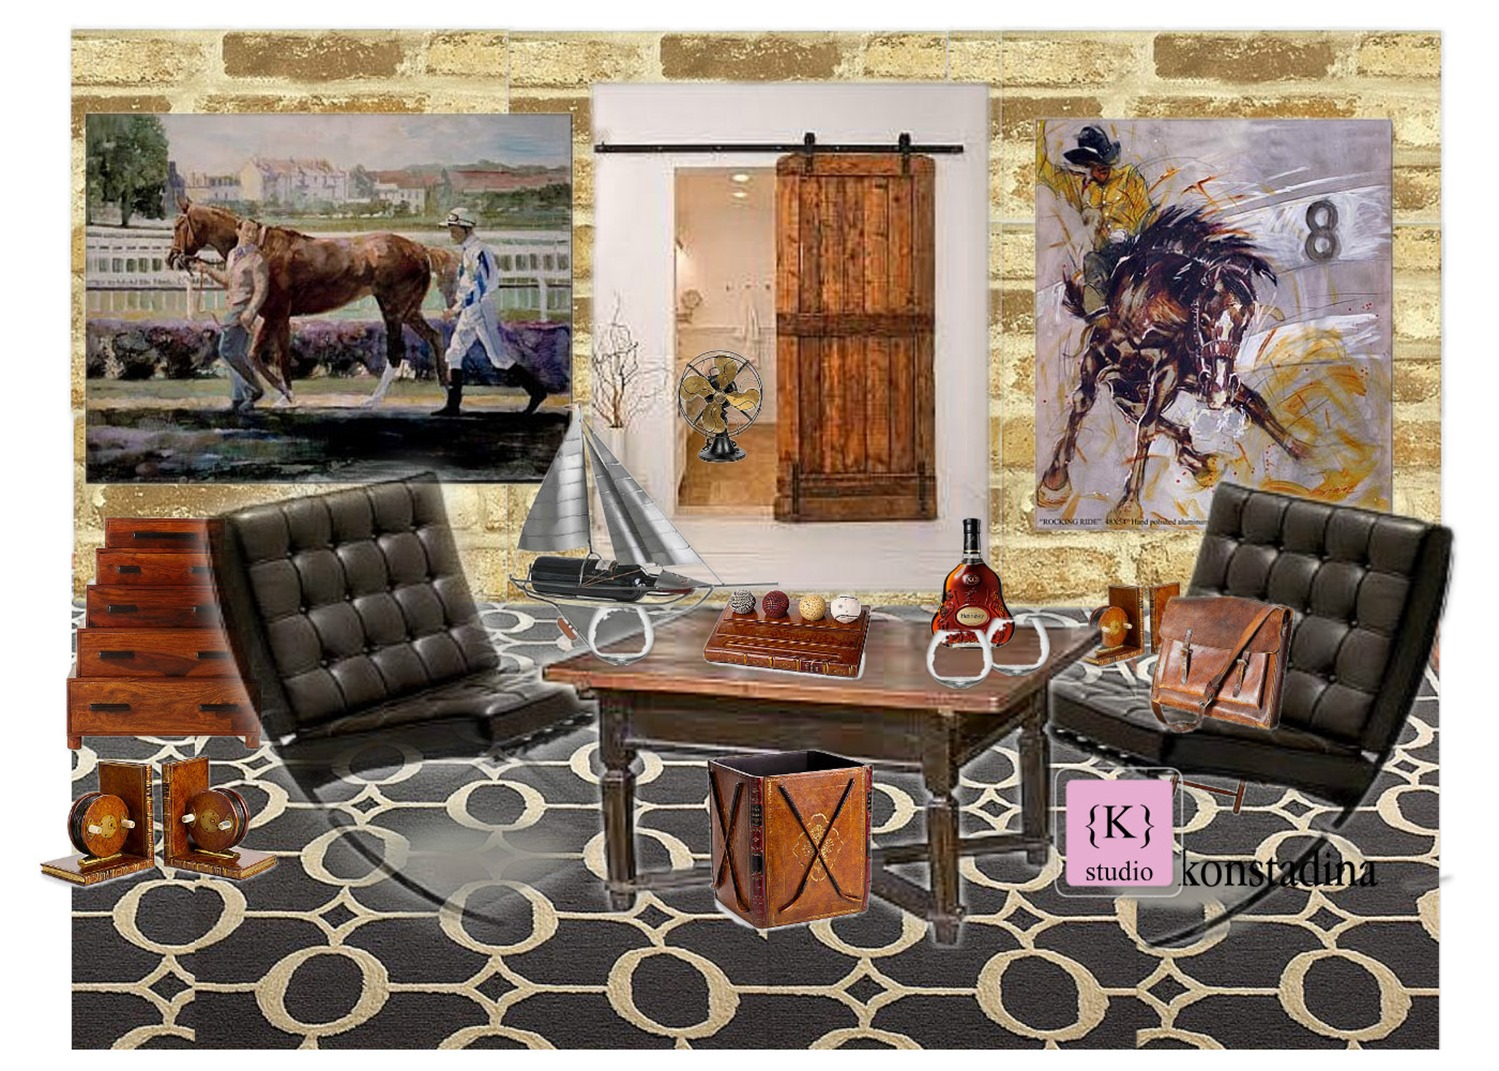 design board: man cave -konstadina nastou- {.k.} blog, Κωνσταντίνα Νάστου